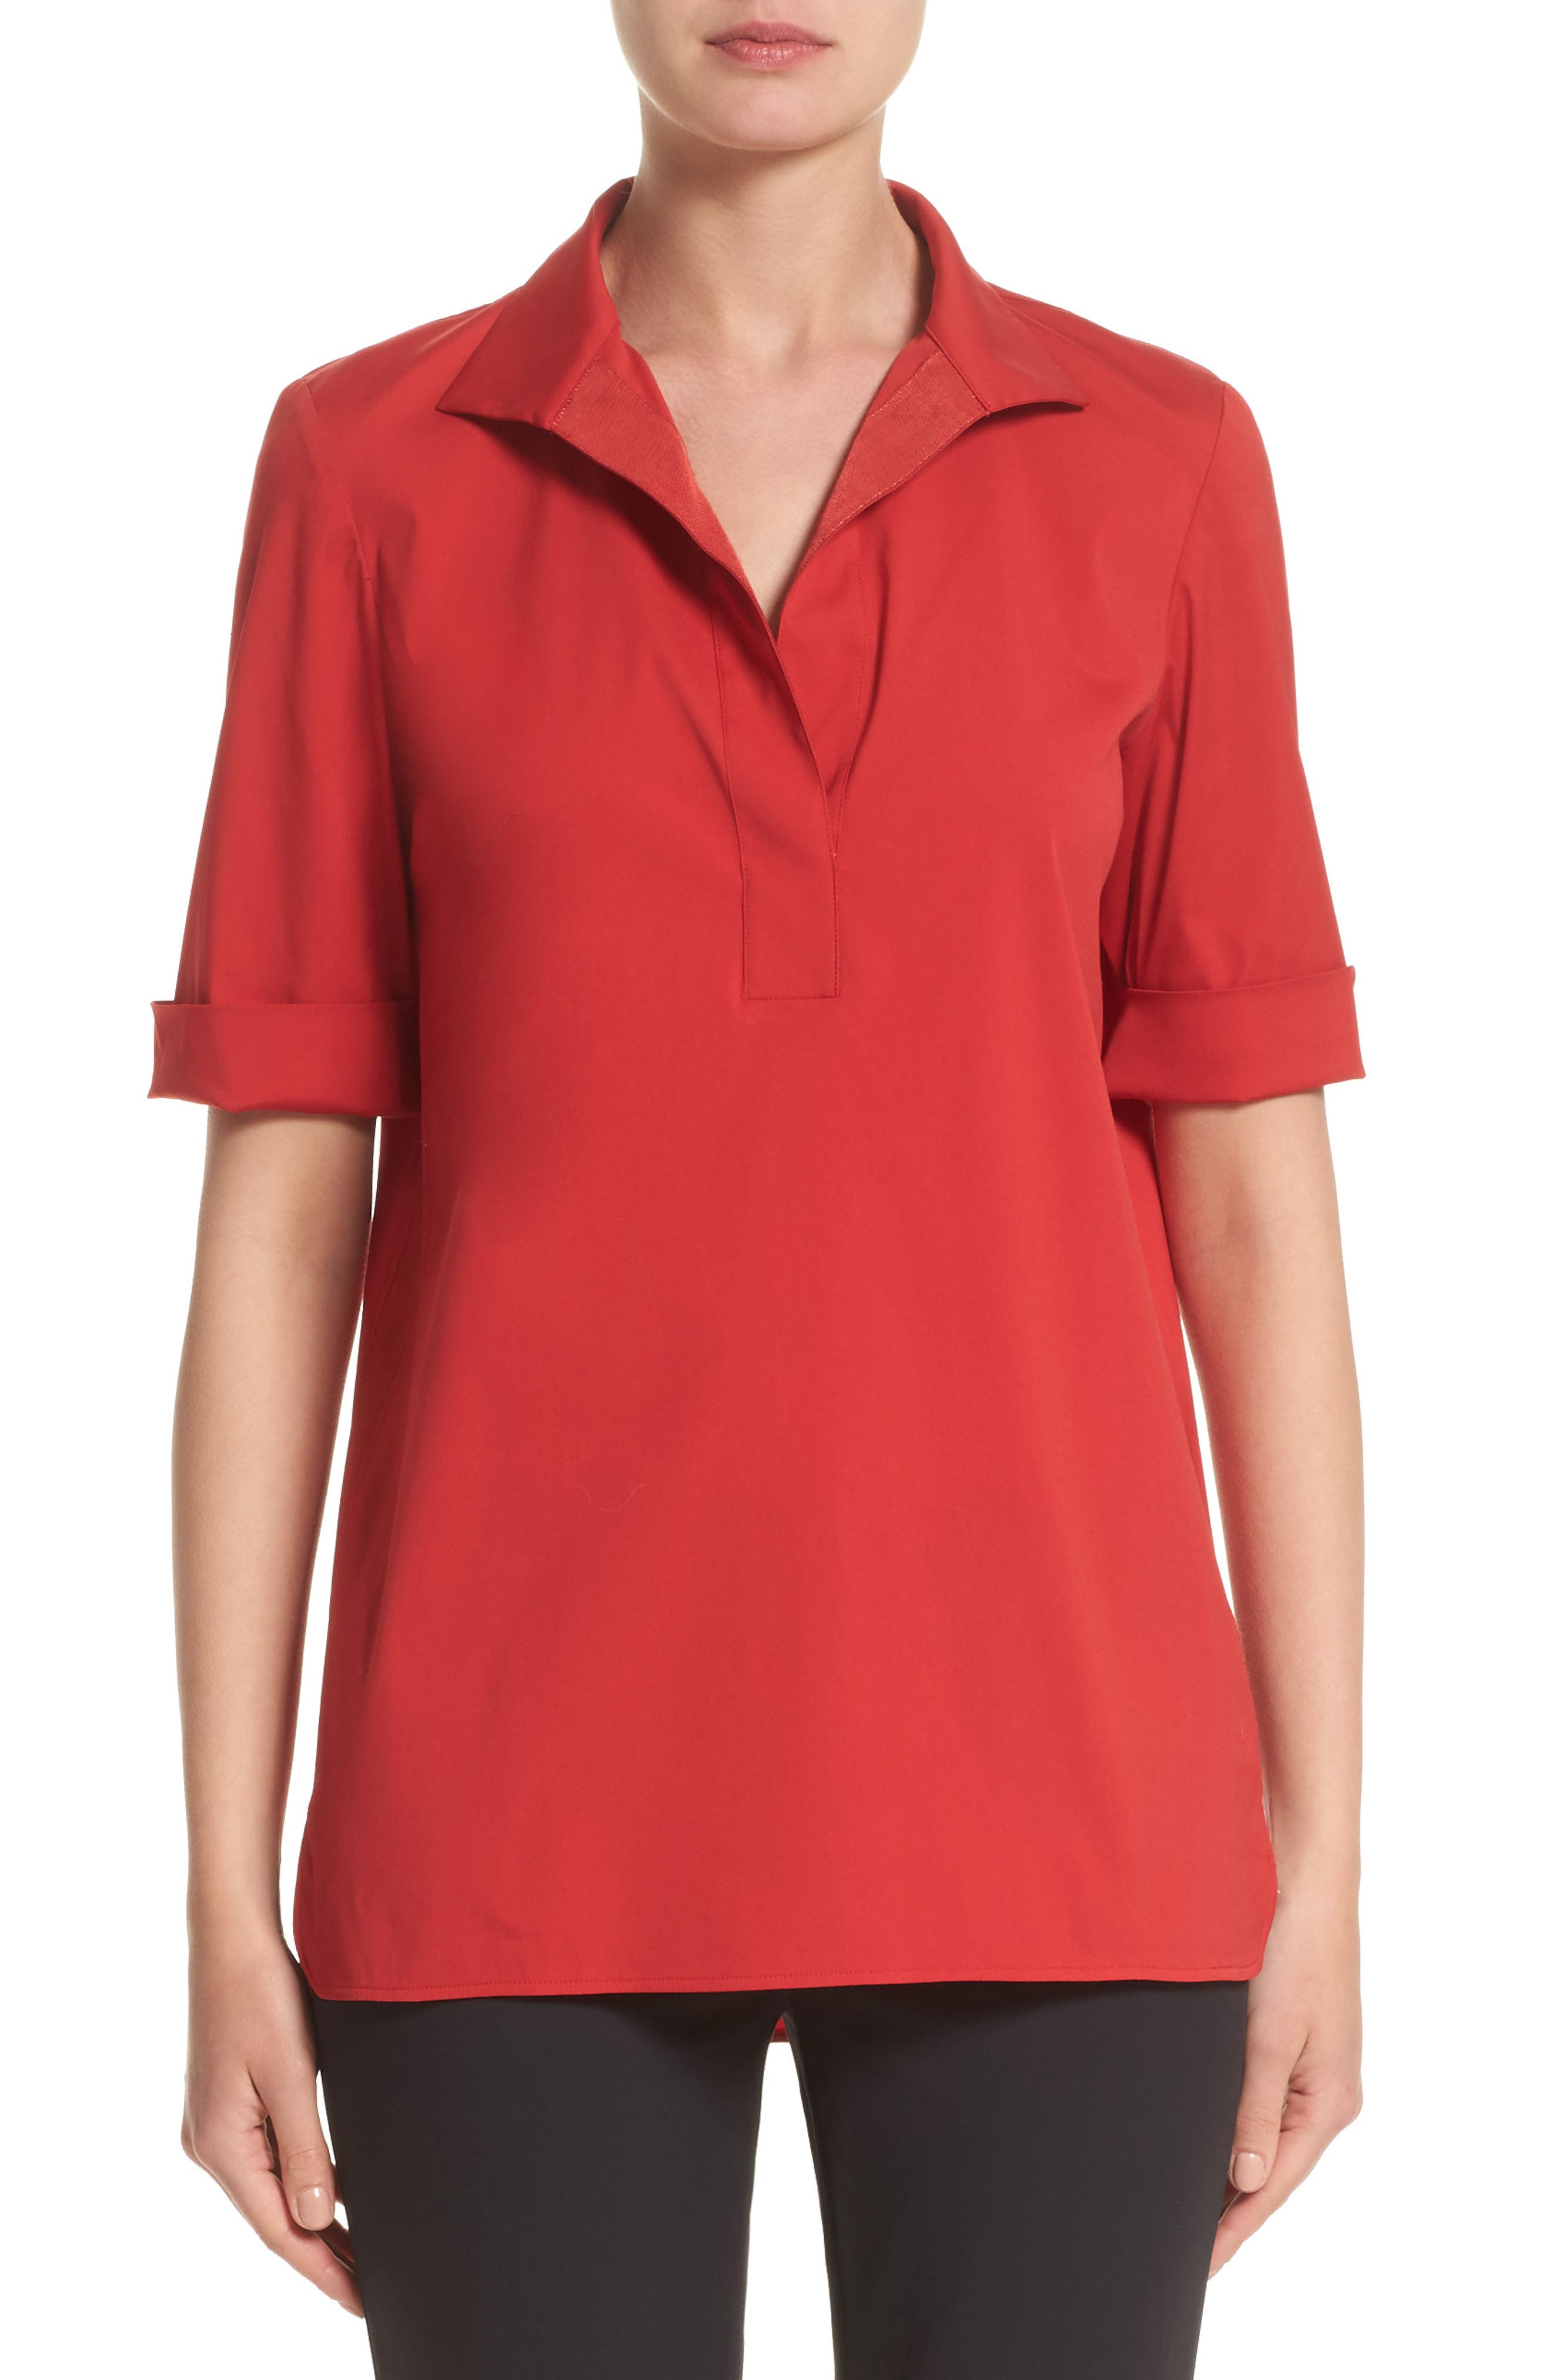 Alternate Image 1 Selected - Lafayette 148 New York Daley High/Low Blouse